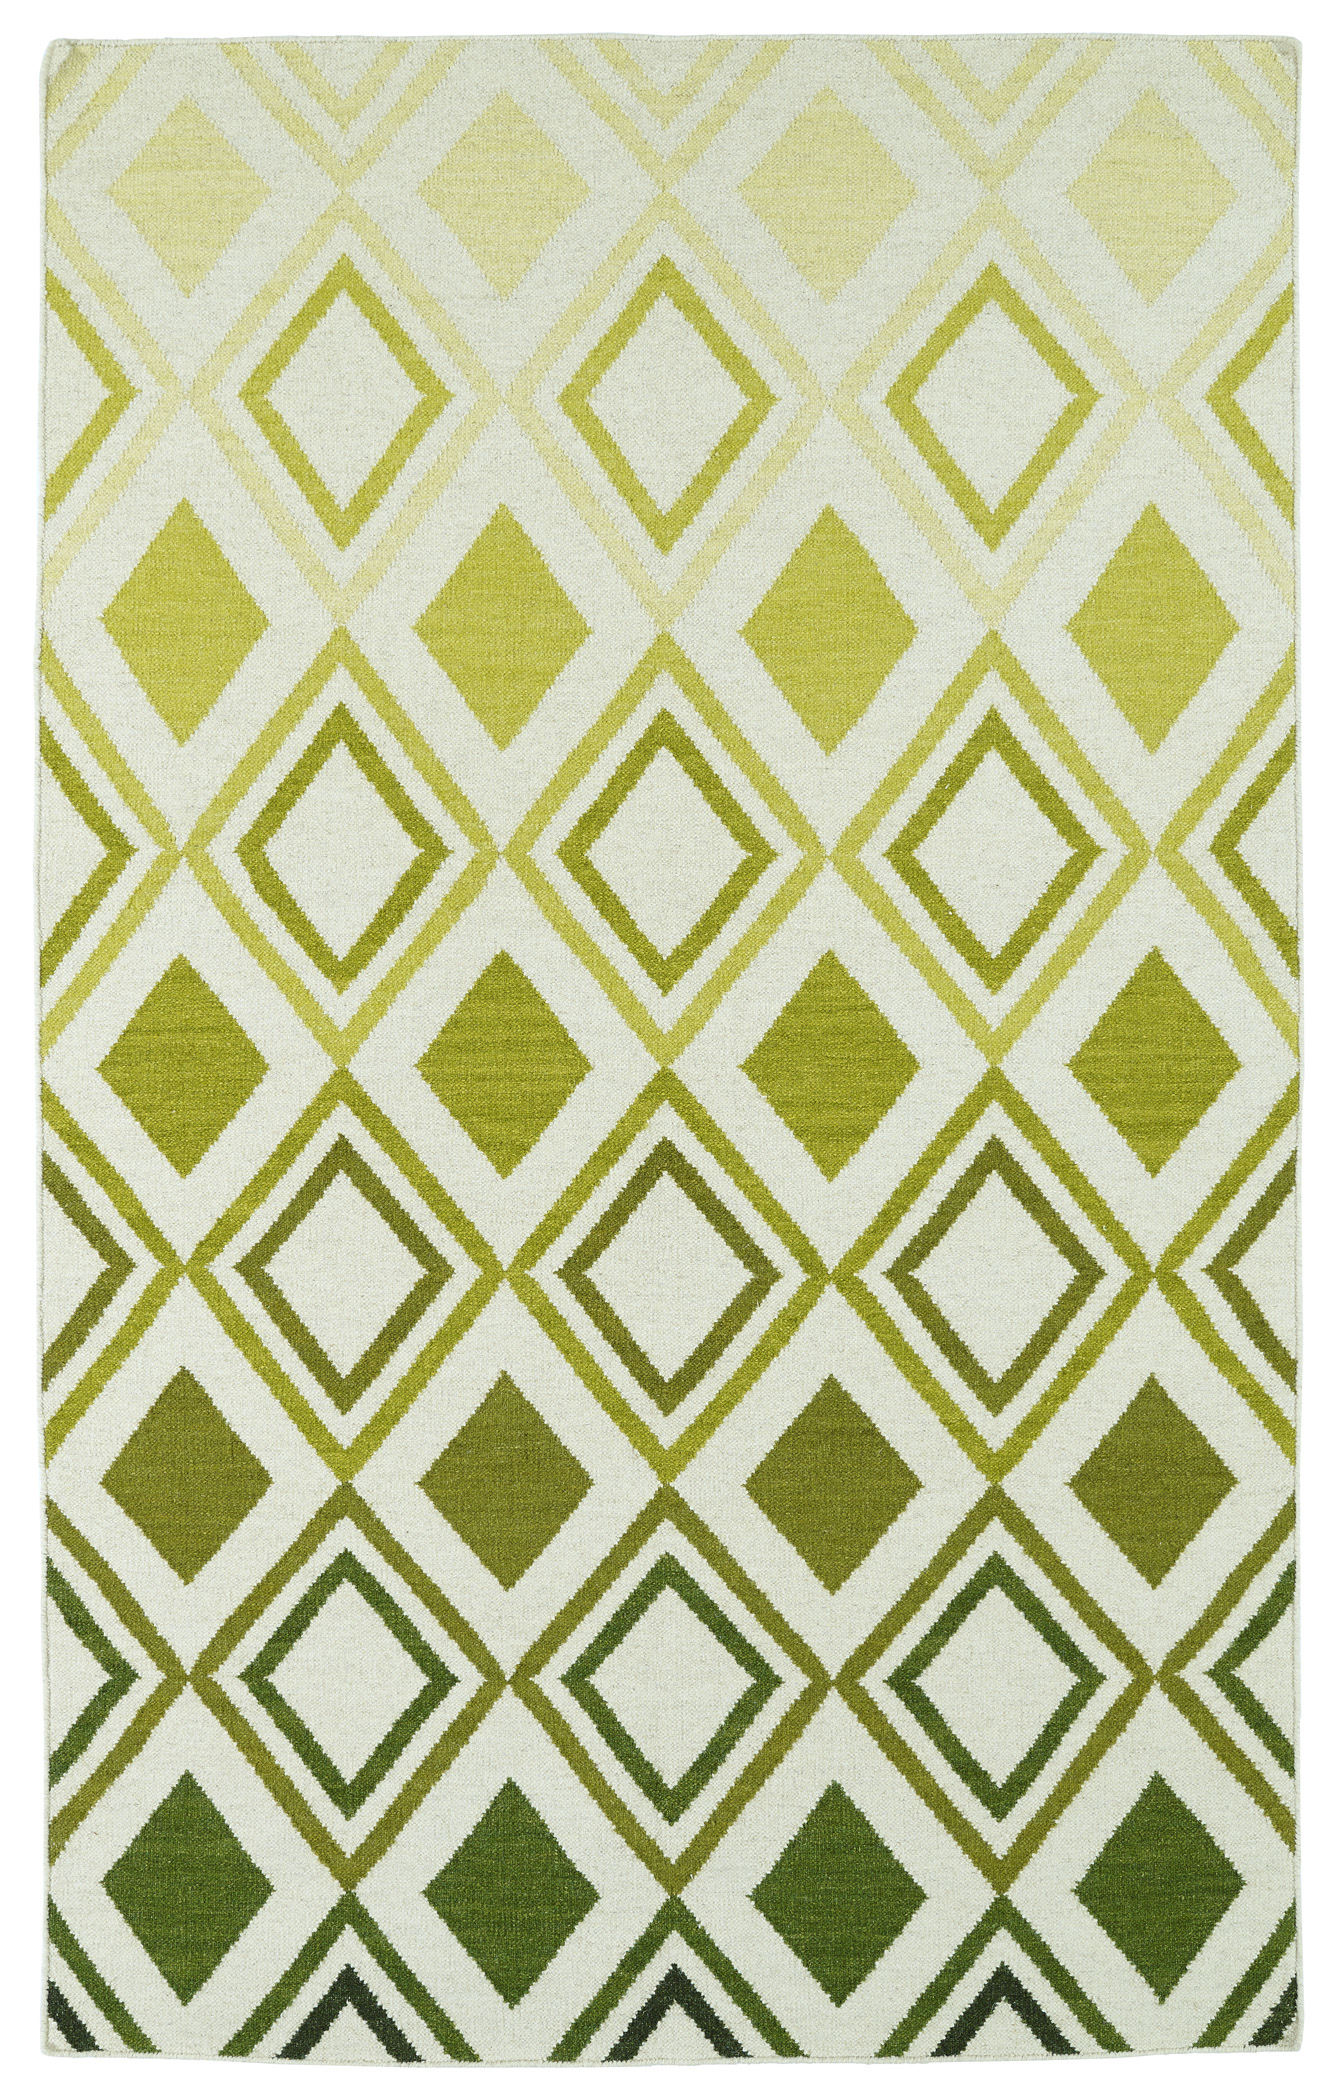 Kaleen Glam GLA09 50 Green Area Rug